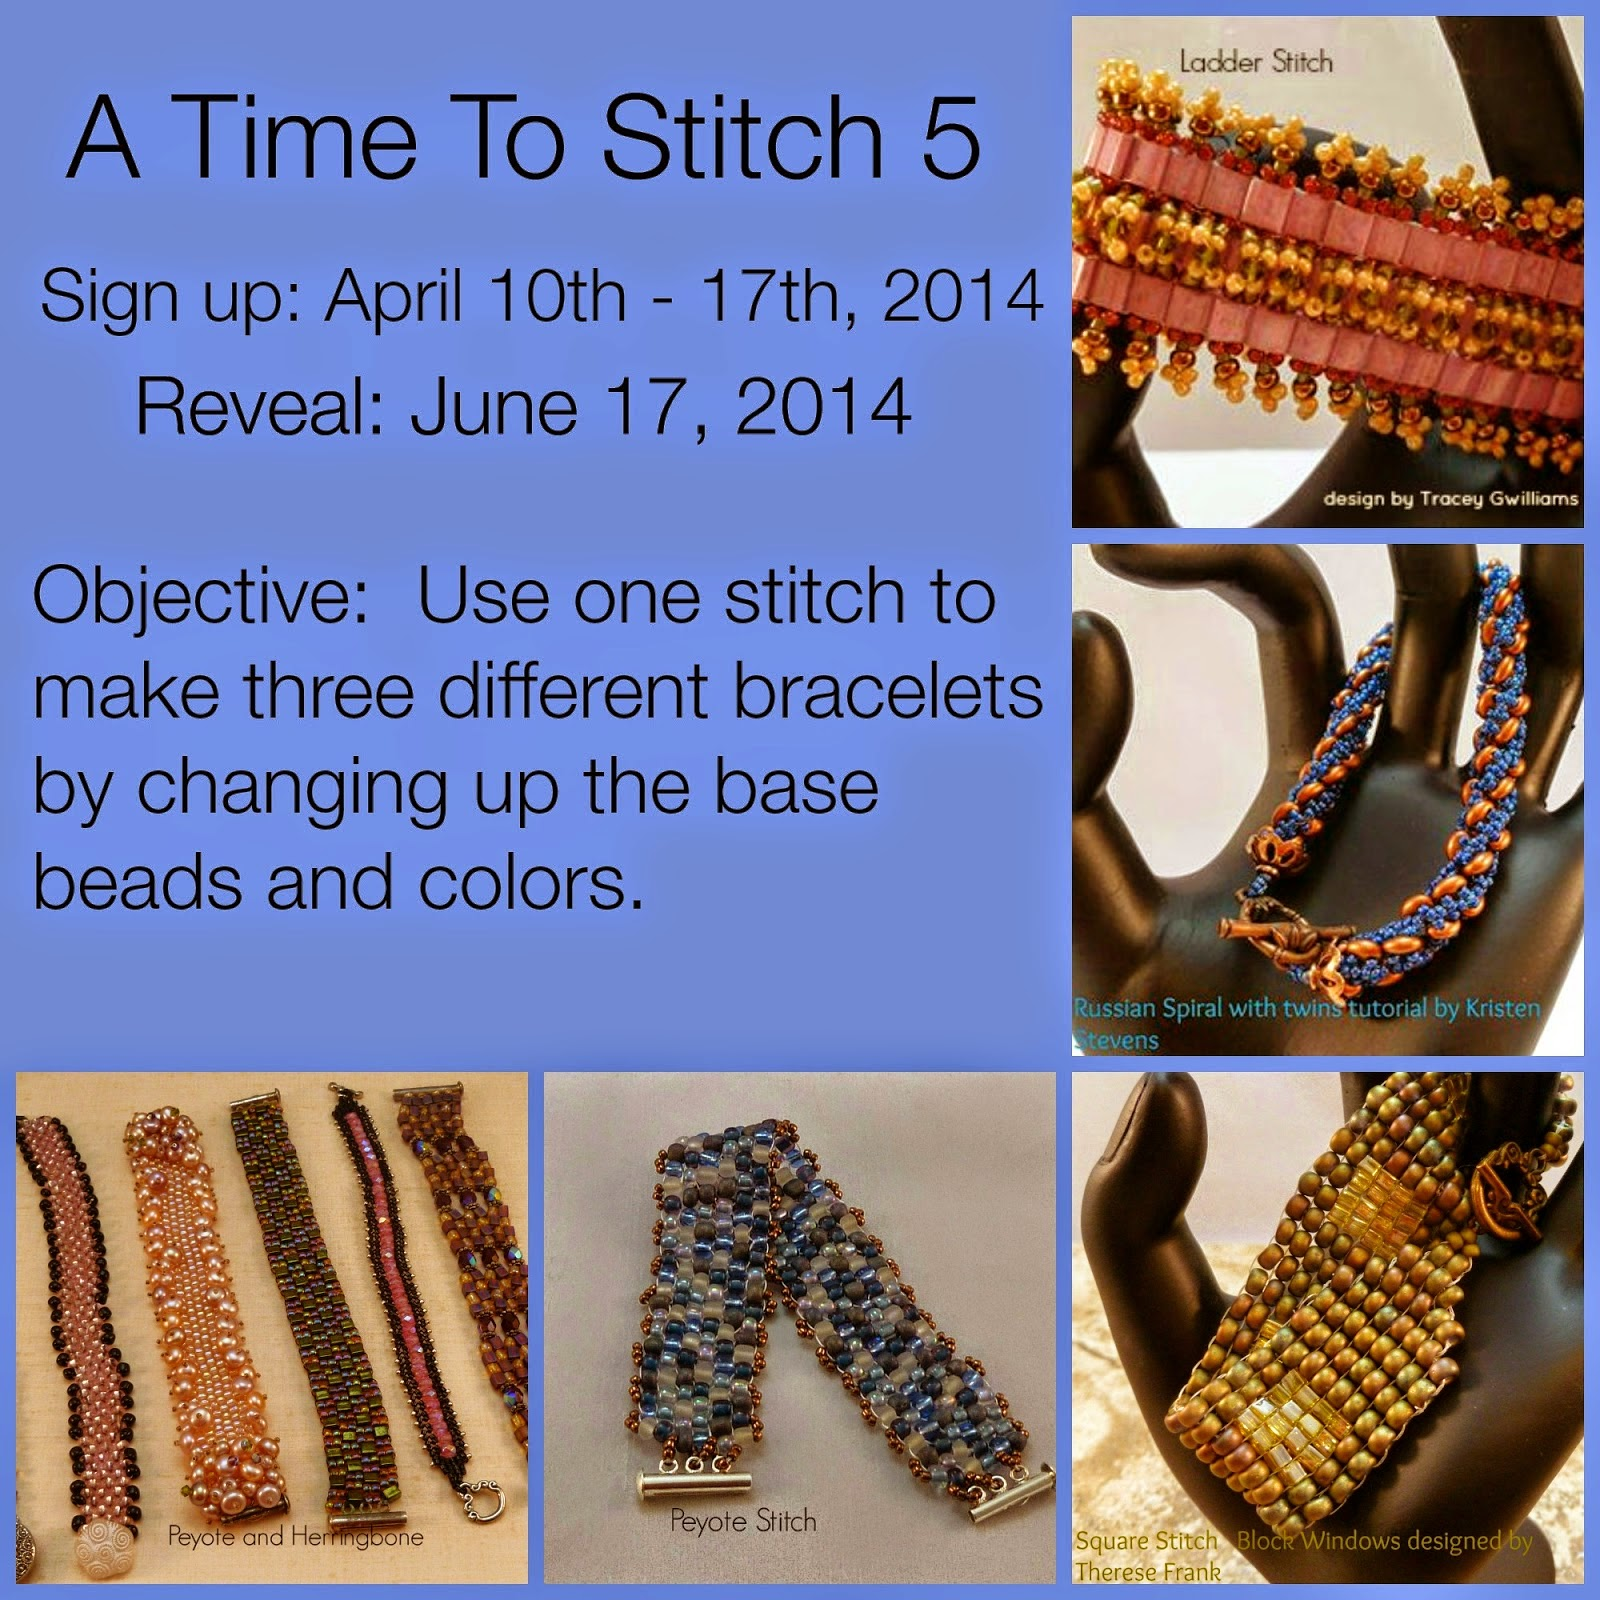 http://onekisscreations.blogspot.com/2014/04/a-time-to-stitch-5-same-but-different.html